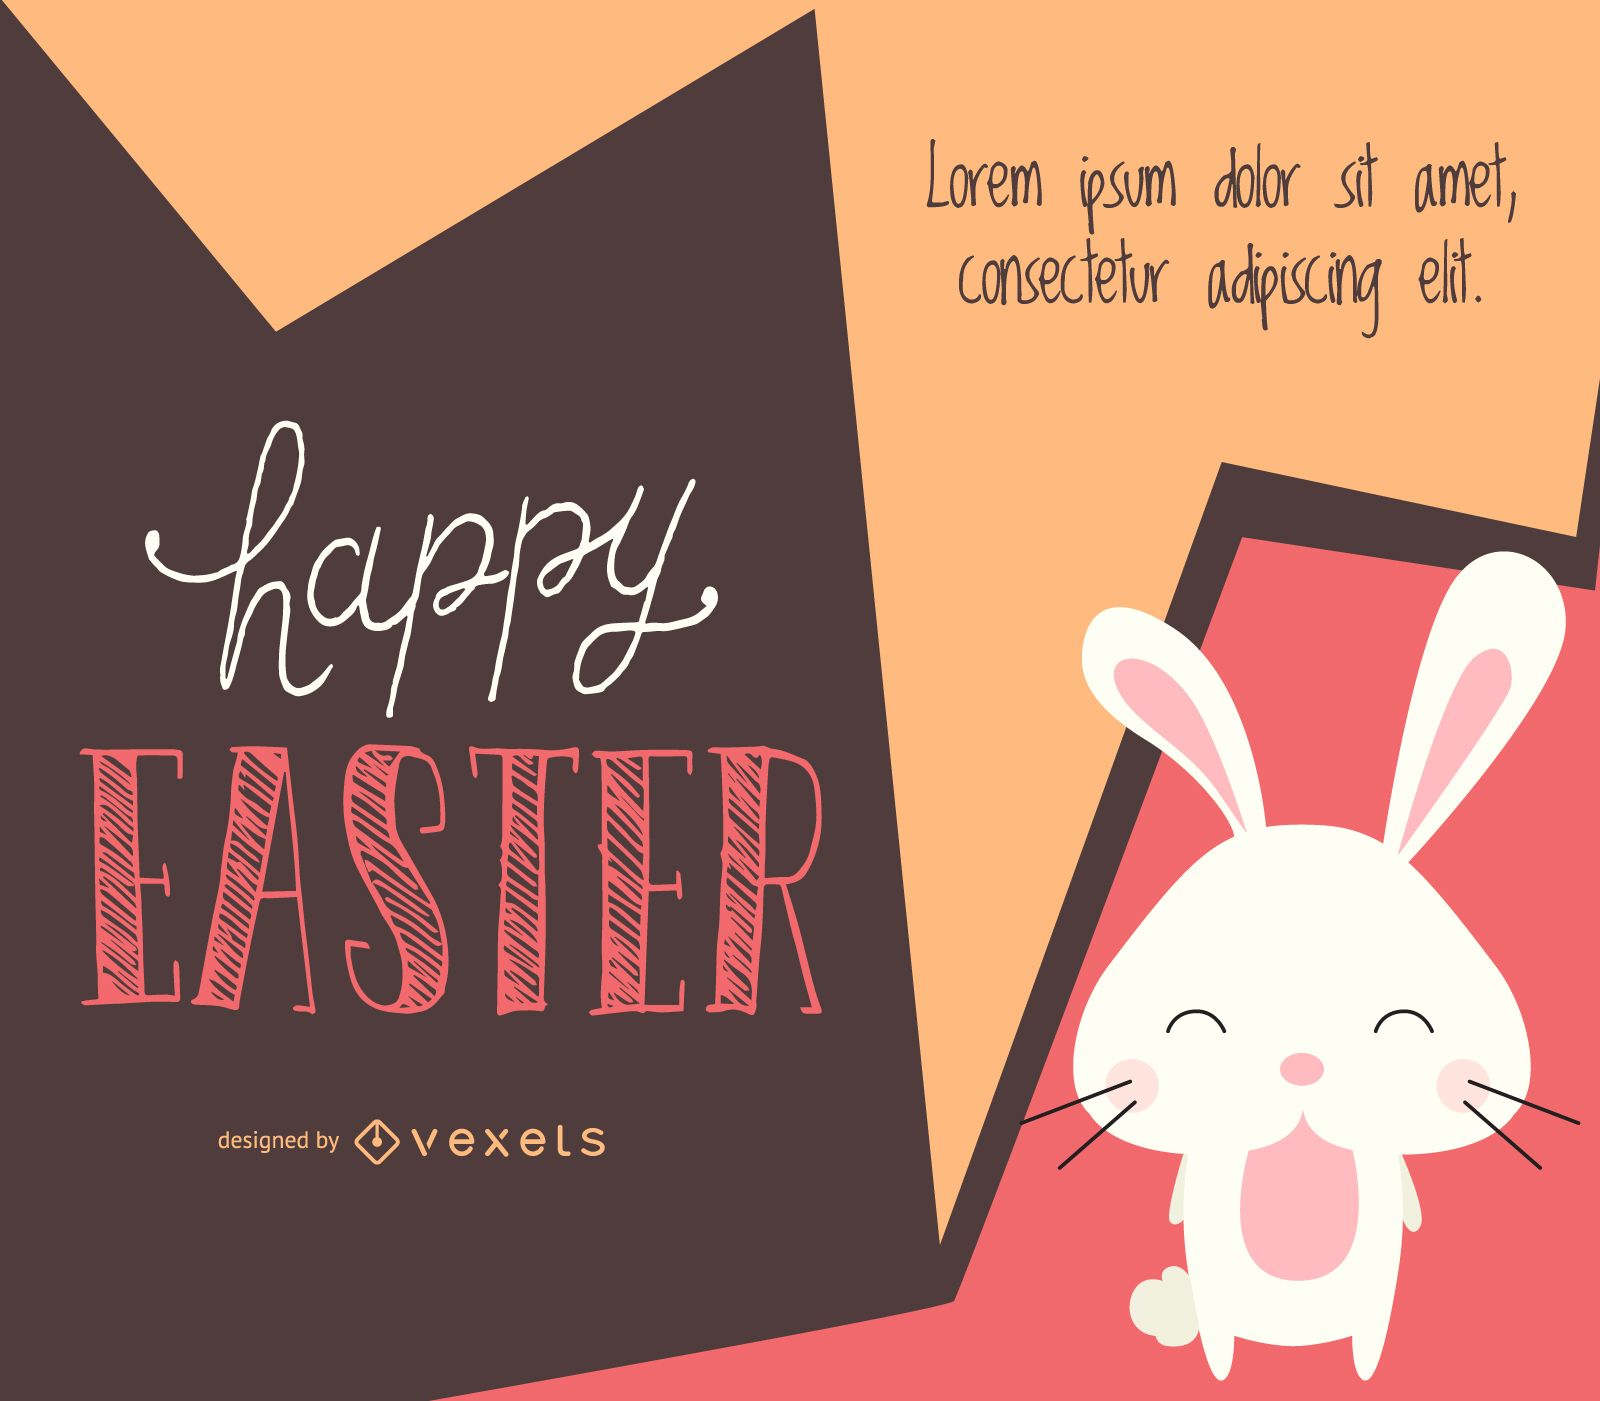 Easter design with an illustrated bunny